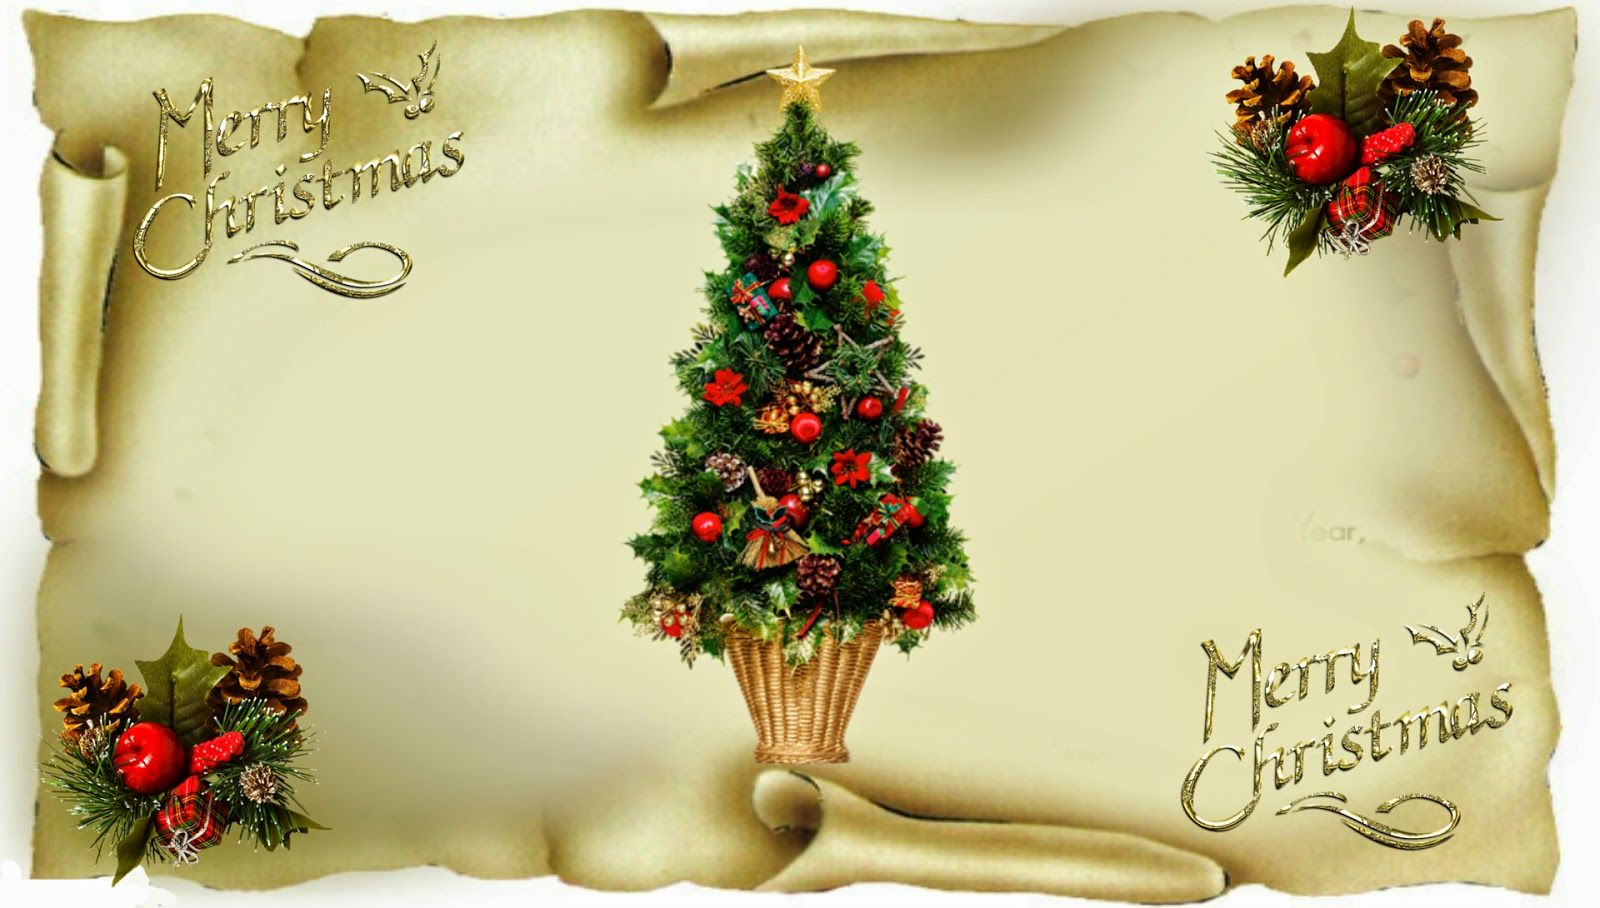 Christmas hd live wallpapers hd wallpapers pinterest christmas hd live wallpapers kristyandbryce Gallery